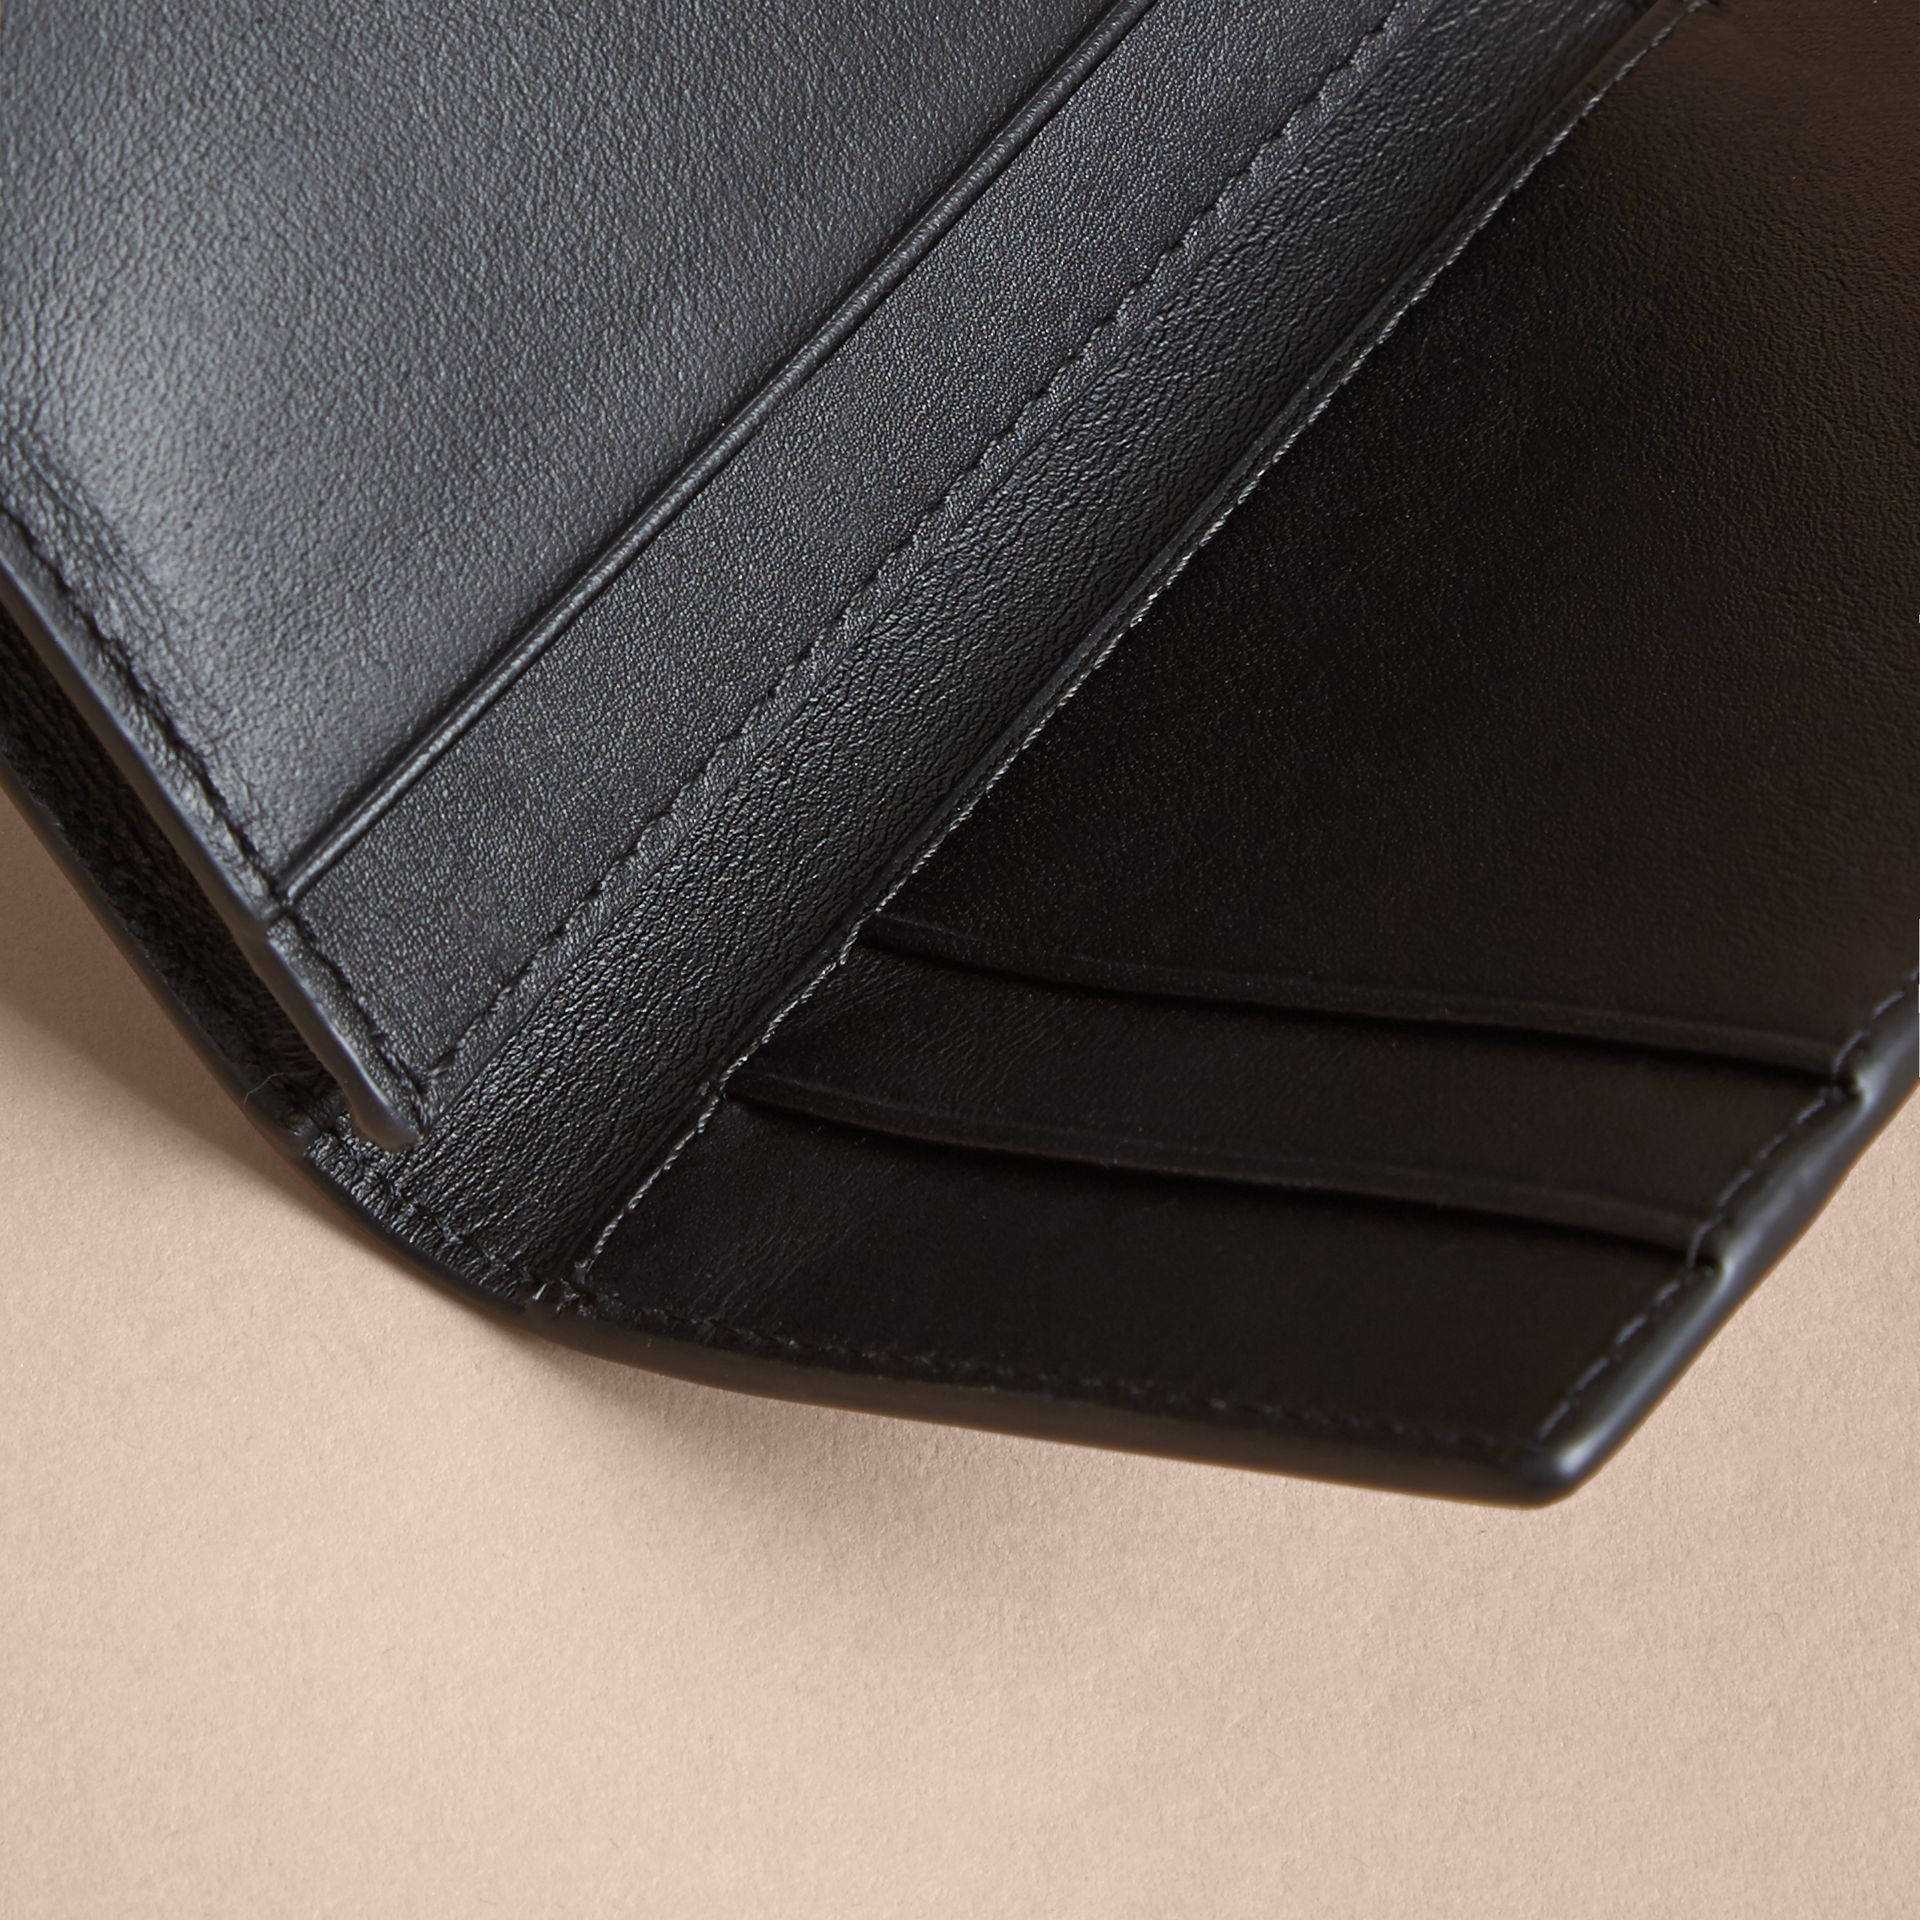 London Check and Leather Folding Card Case in Navy/black - Men | Burberry - gallery image 3